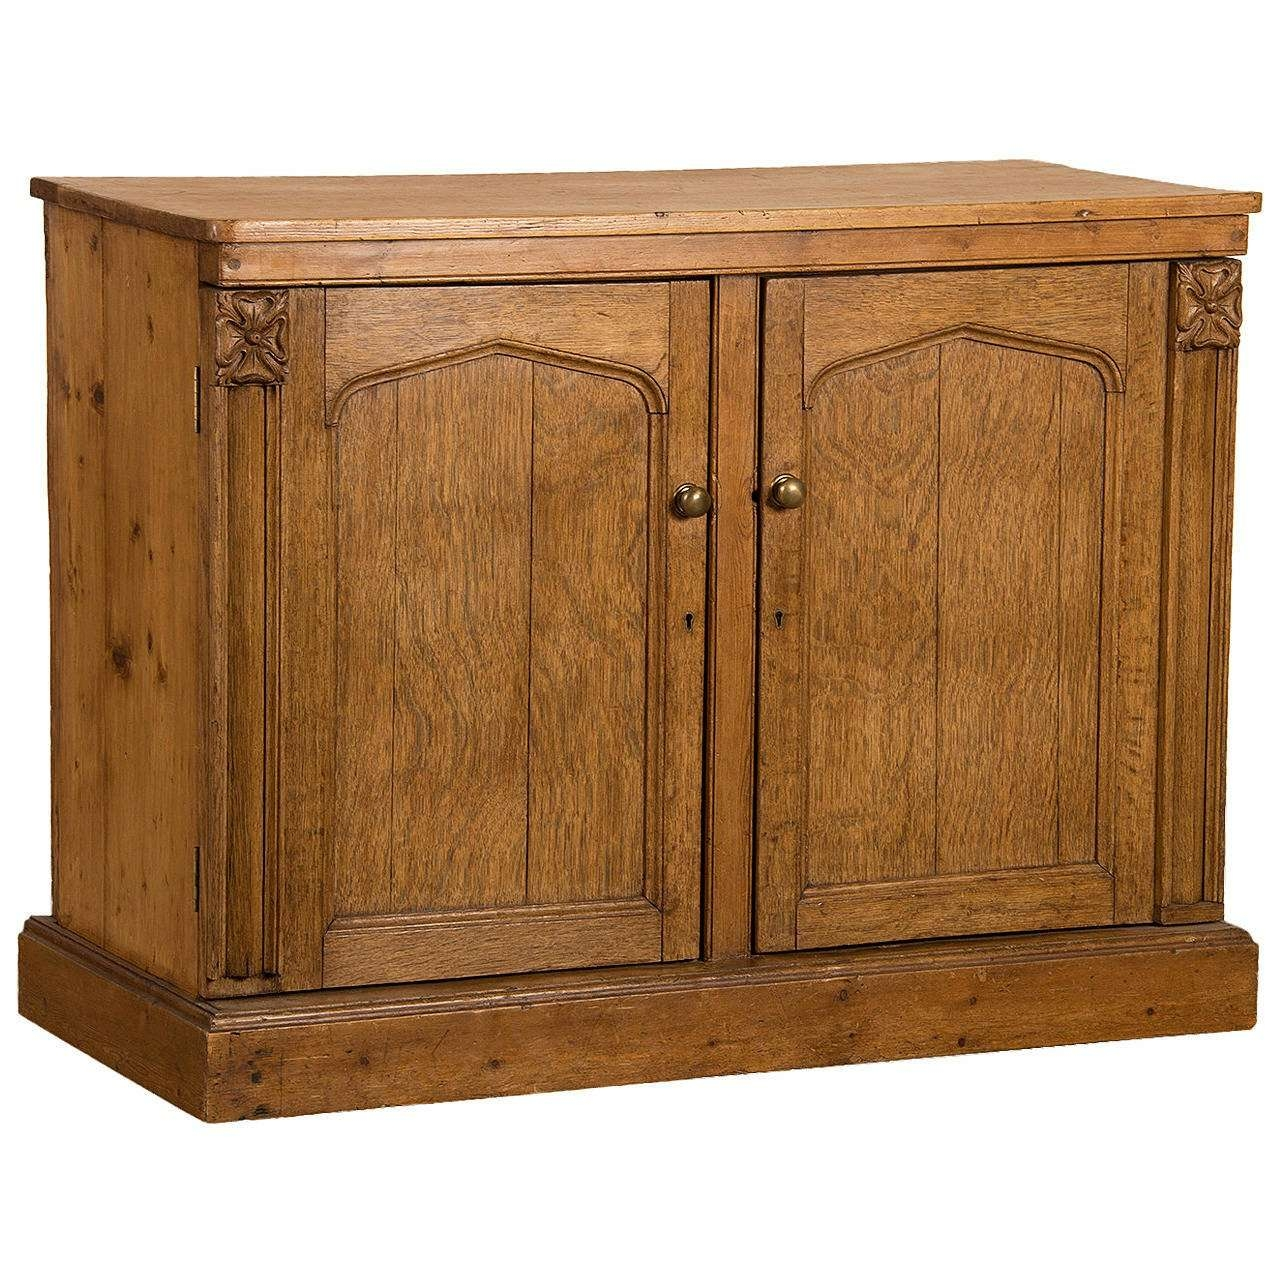 Antique Irish Gothic Revival Oak And Pine Buffet Cabinet Circa With Regard To Jacobean Sideboards Buffets (View 2 of 20)